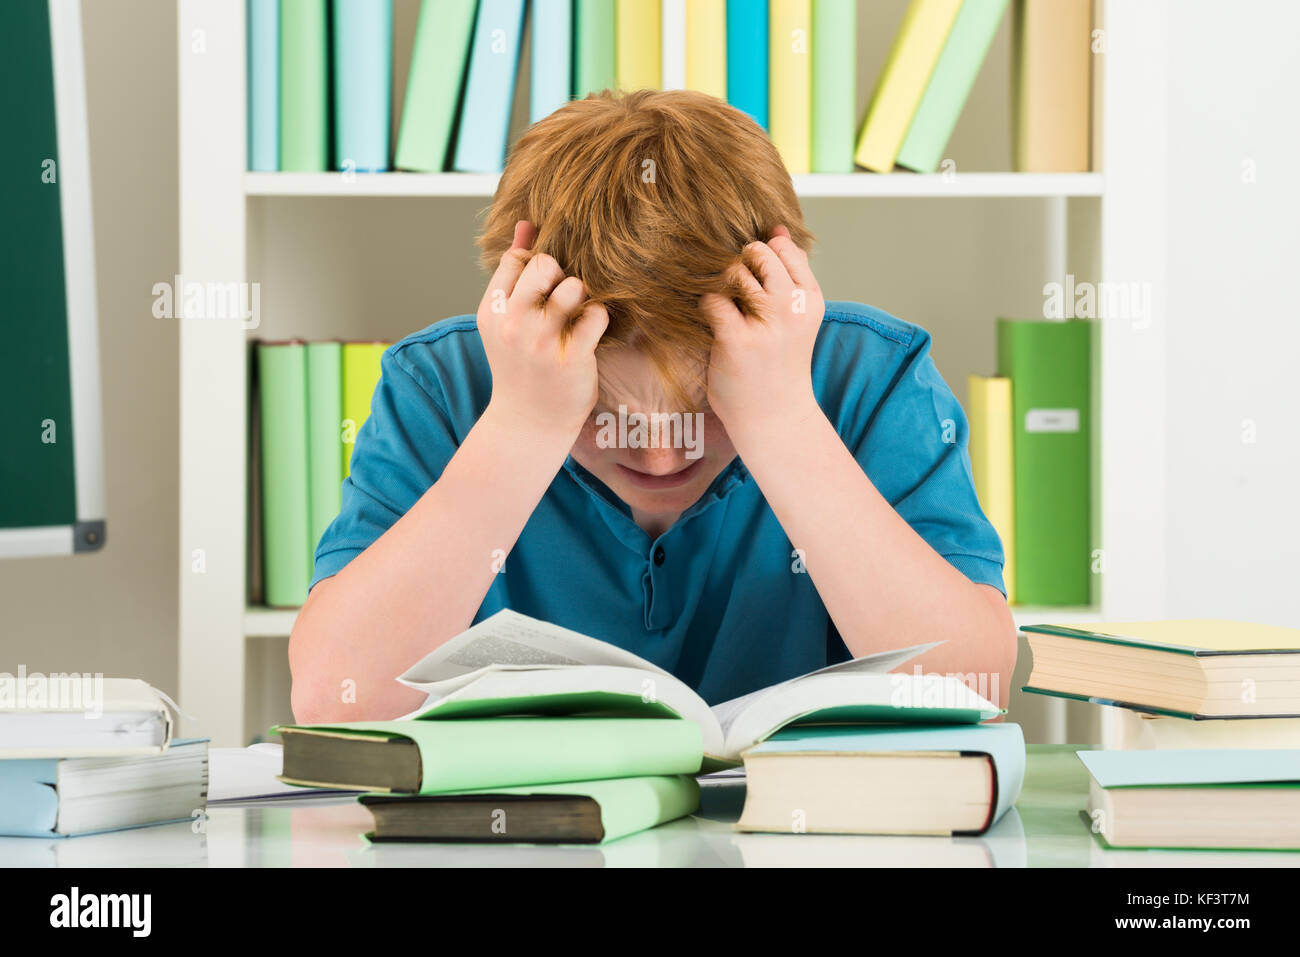 Exhausted Boy Studying In Library With Books On Desk Stock Photo